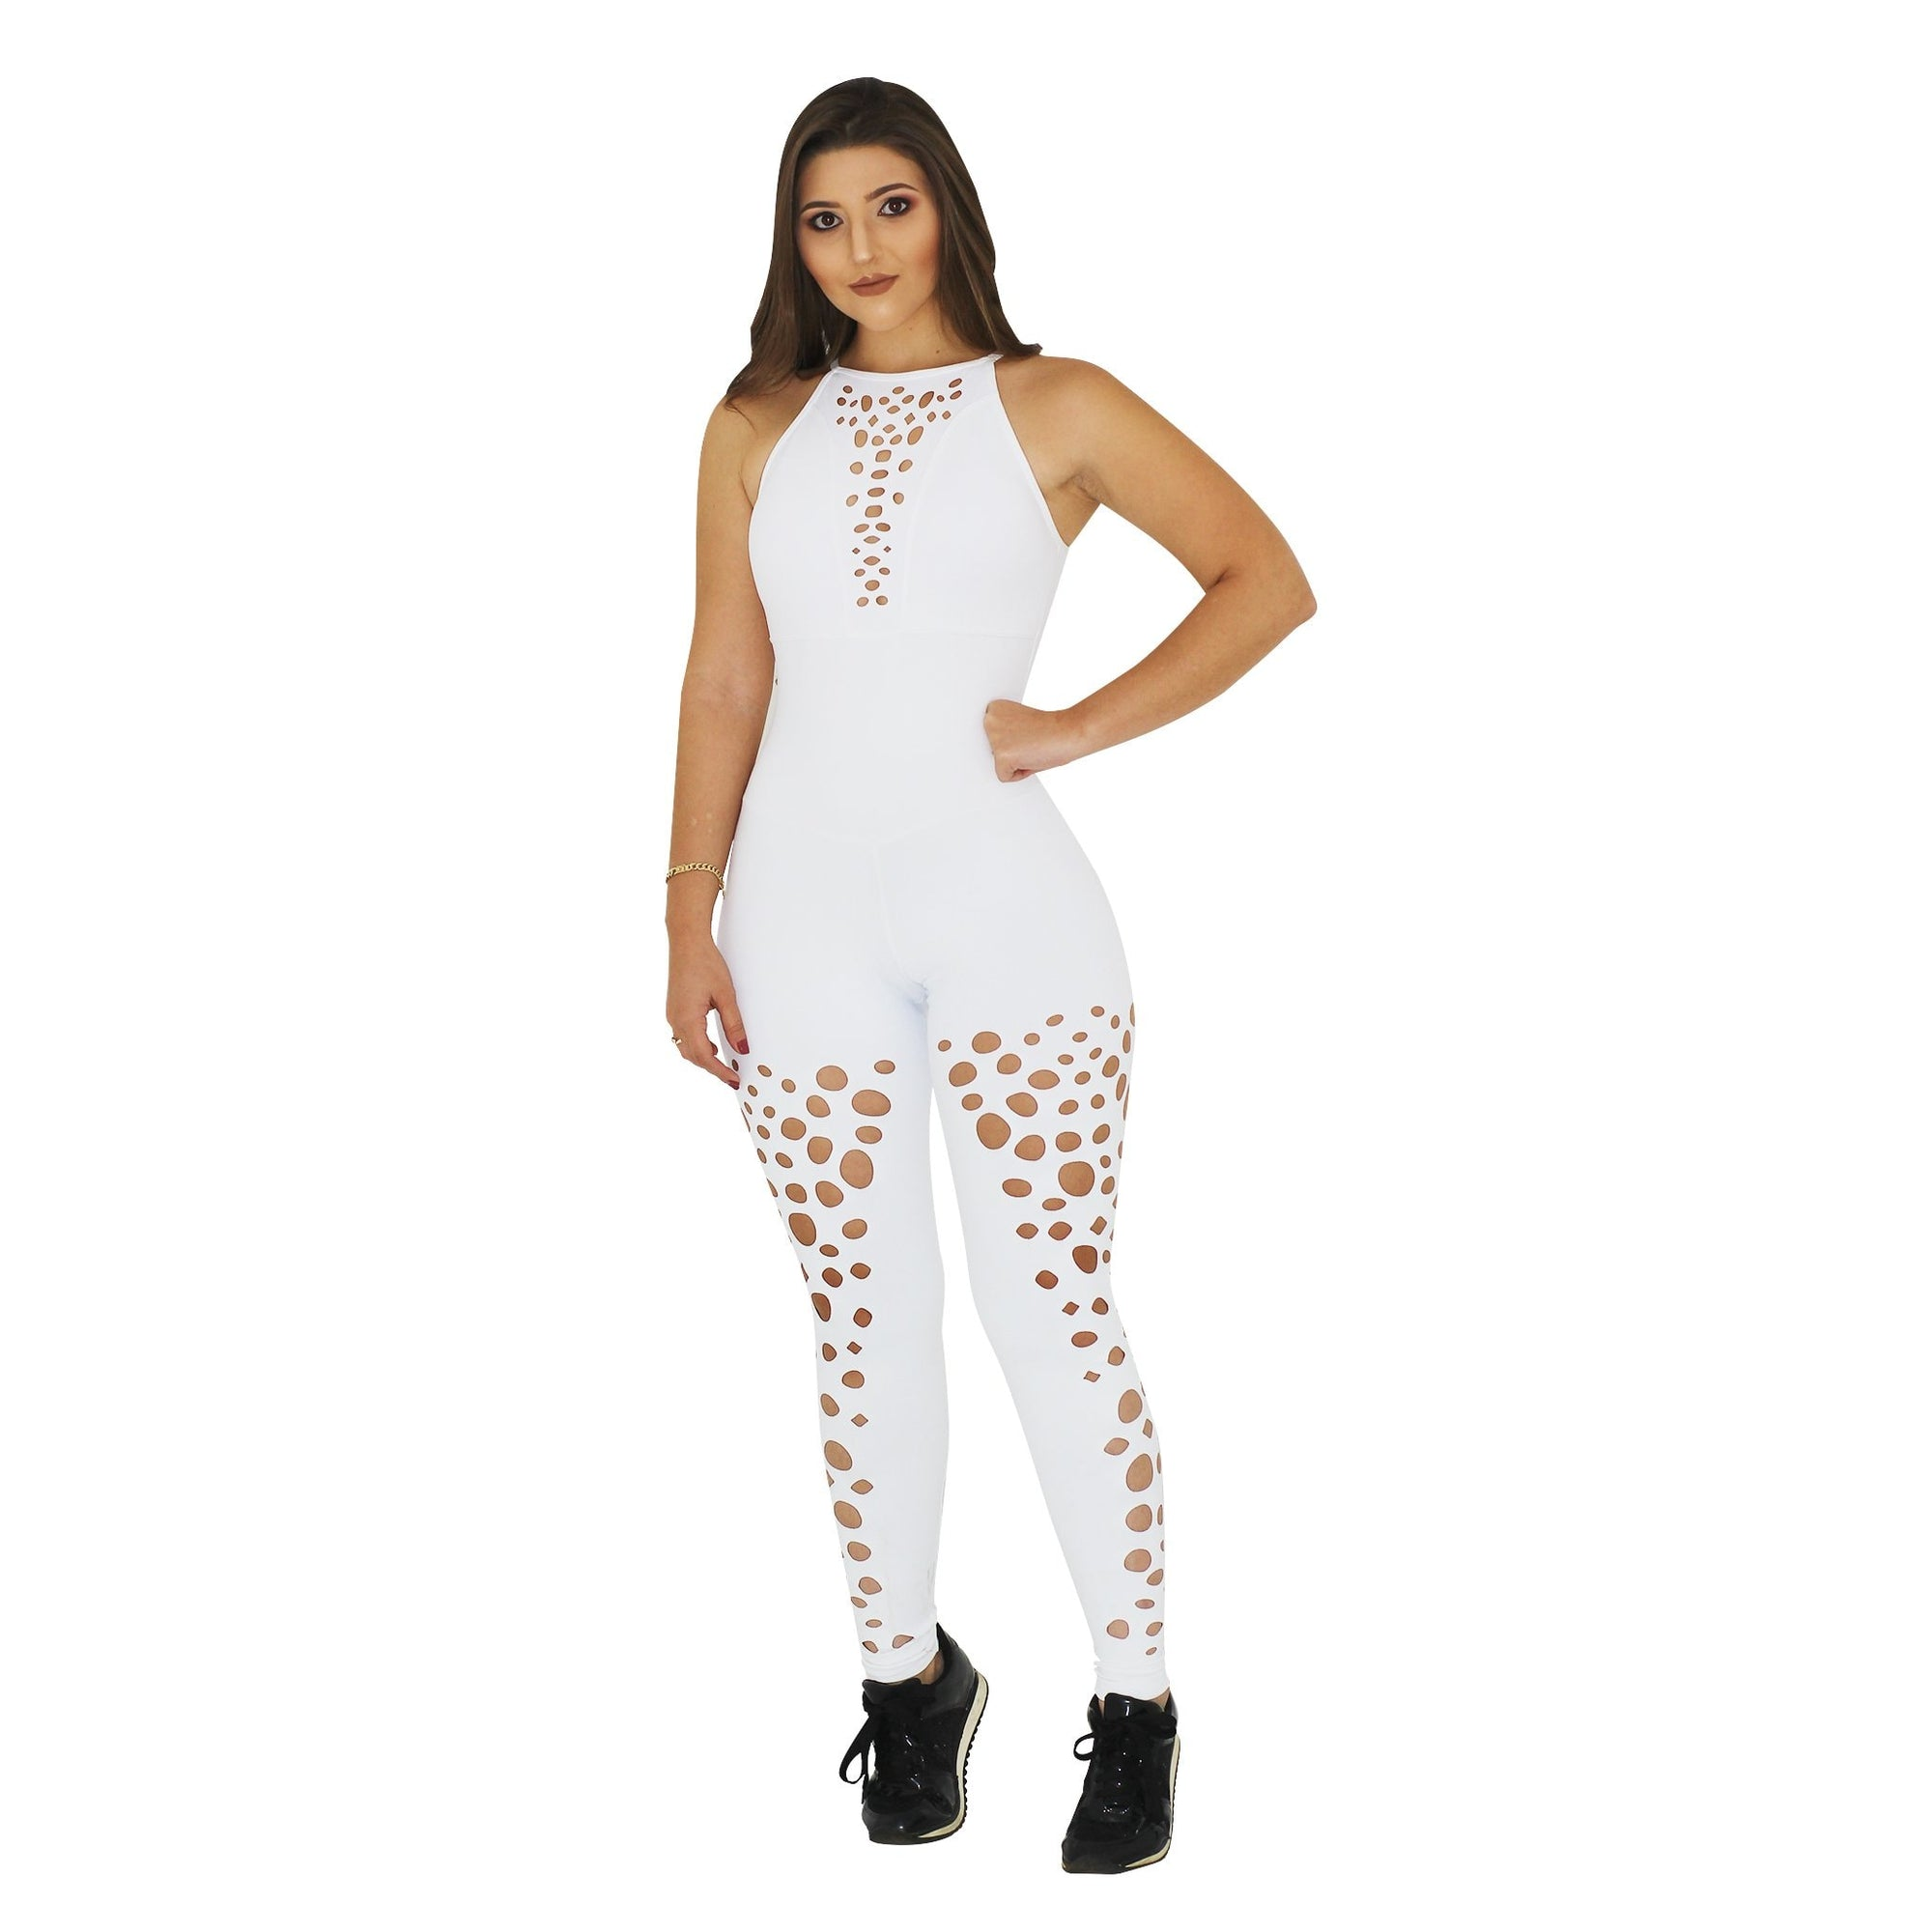 White Lush Bodysuit by Alemana